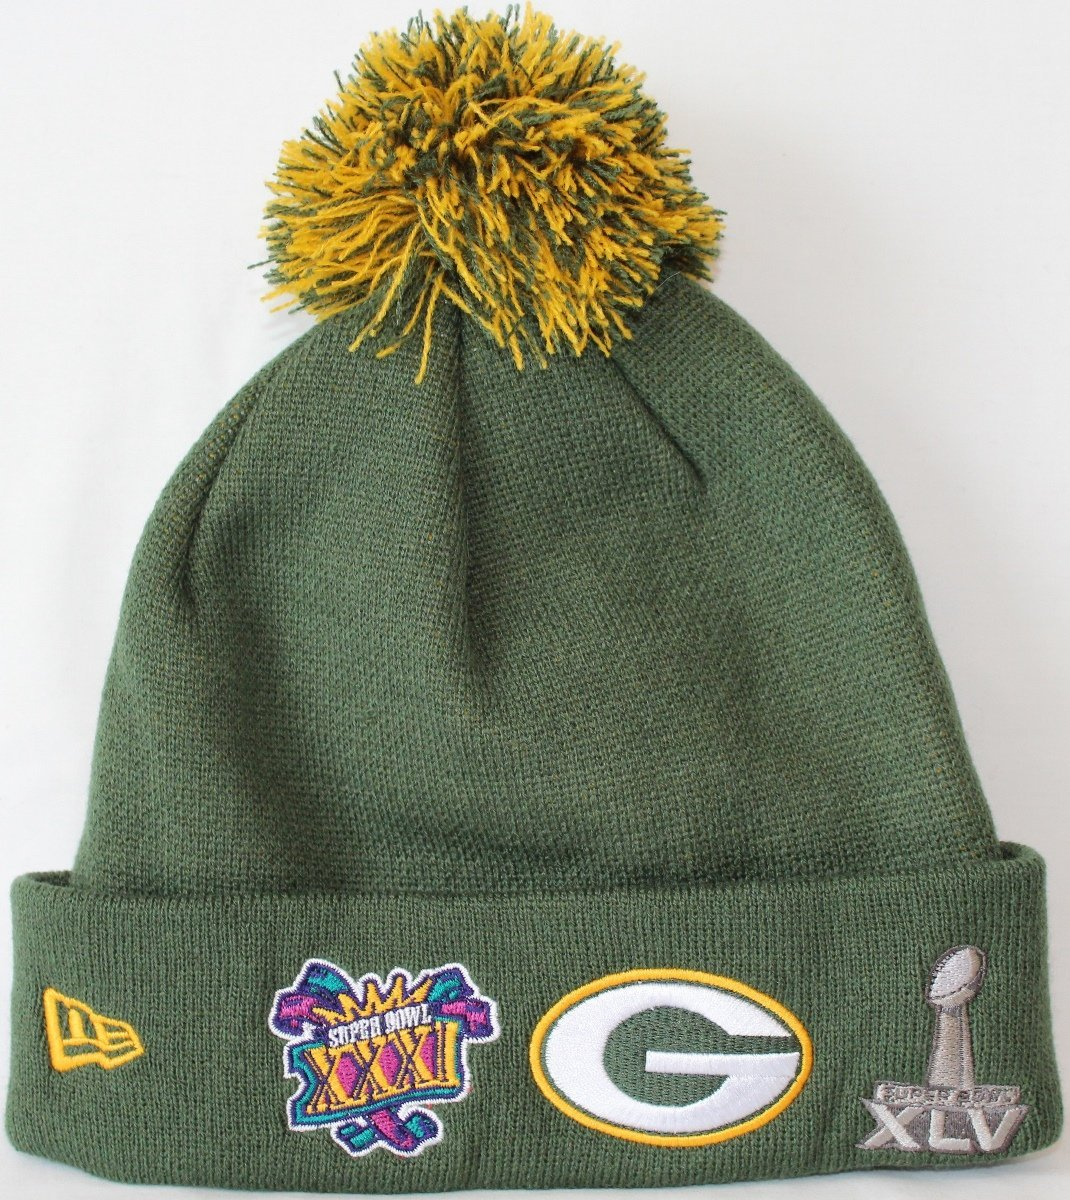 61429b384 Get Quotations · Green Bay Packers Super Bowl Patch Big Team Cuffed Pom  Knit Hat   Cap